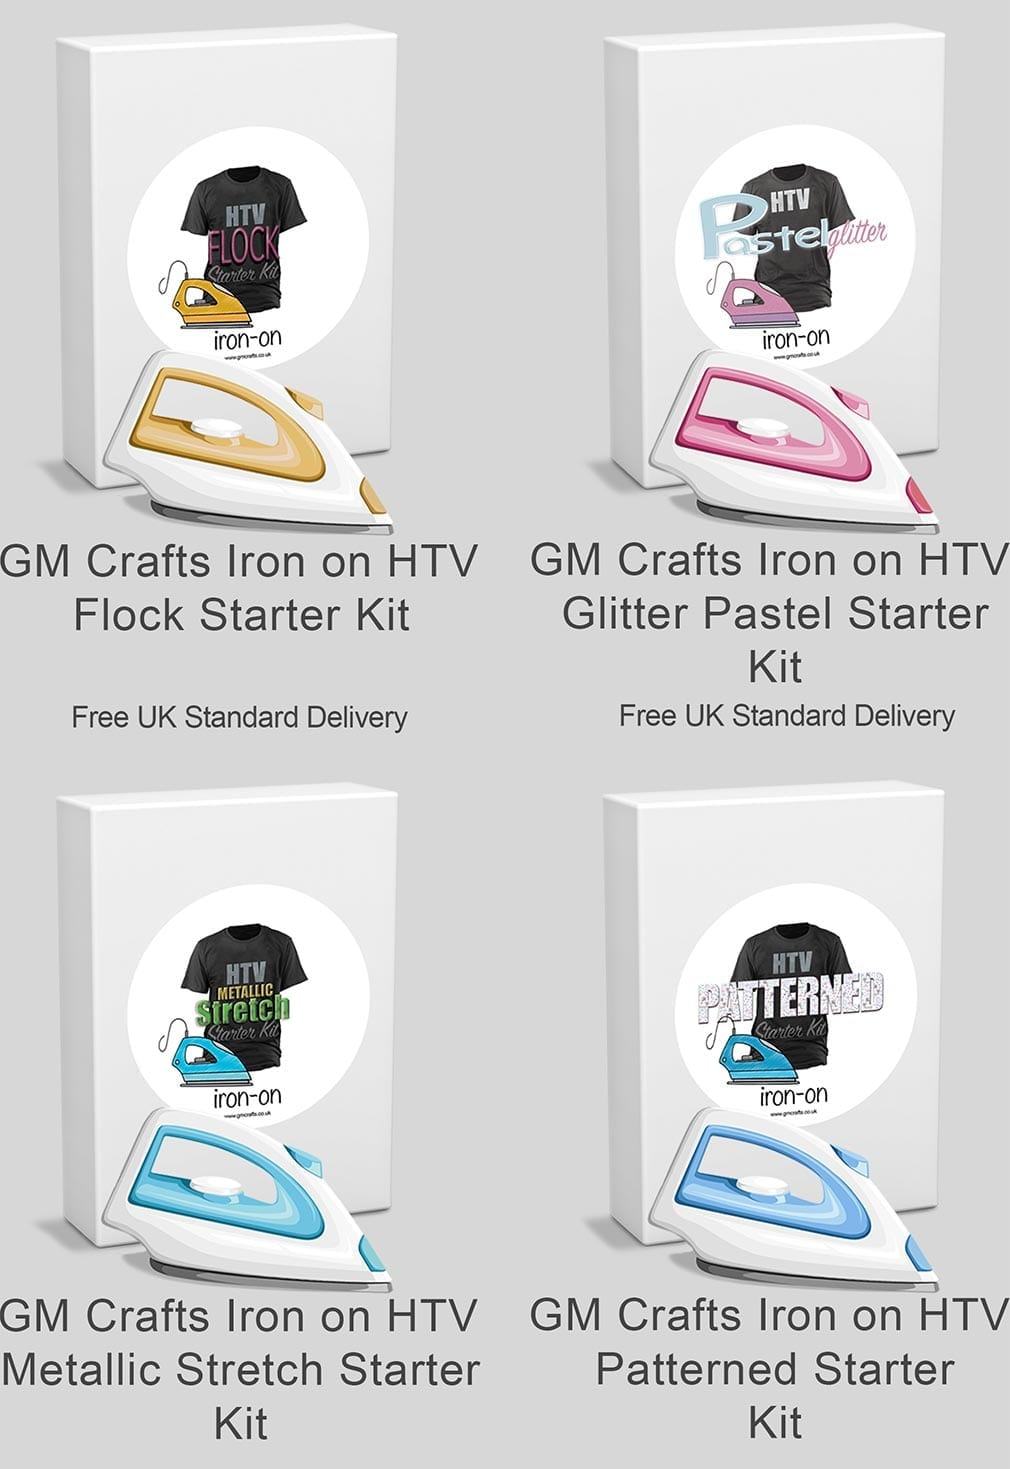 Mobile-Starter-Kits-Page-May-20-4